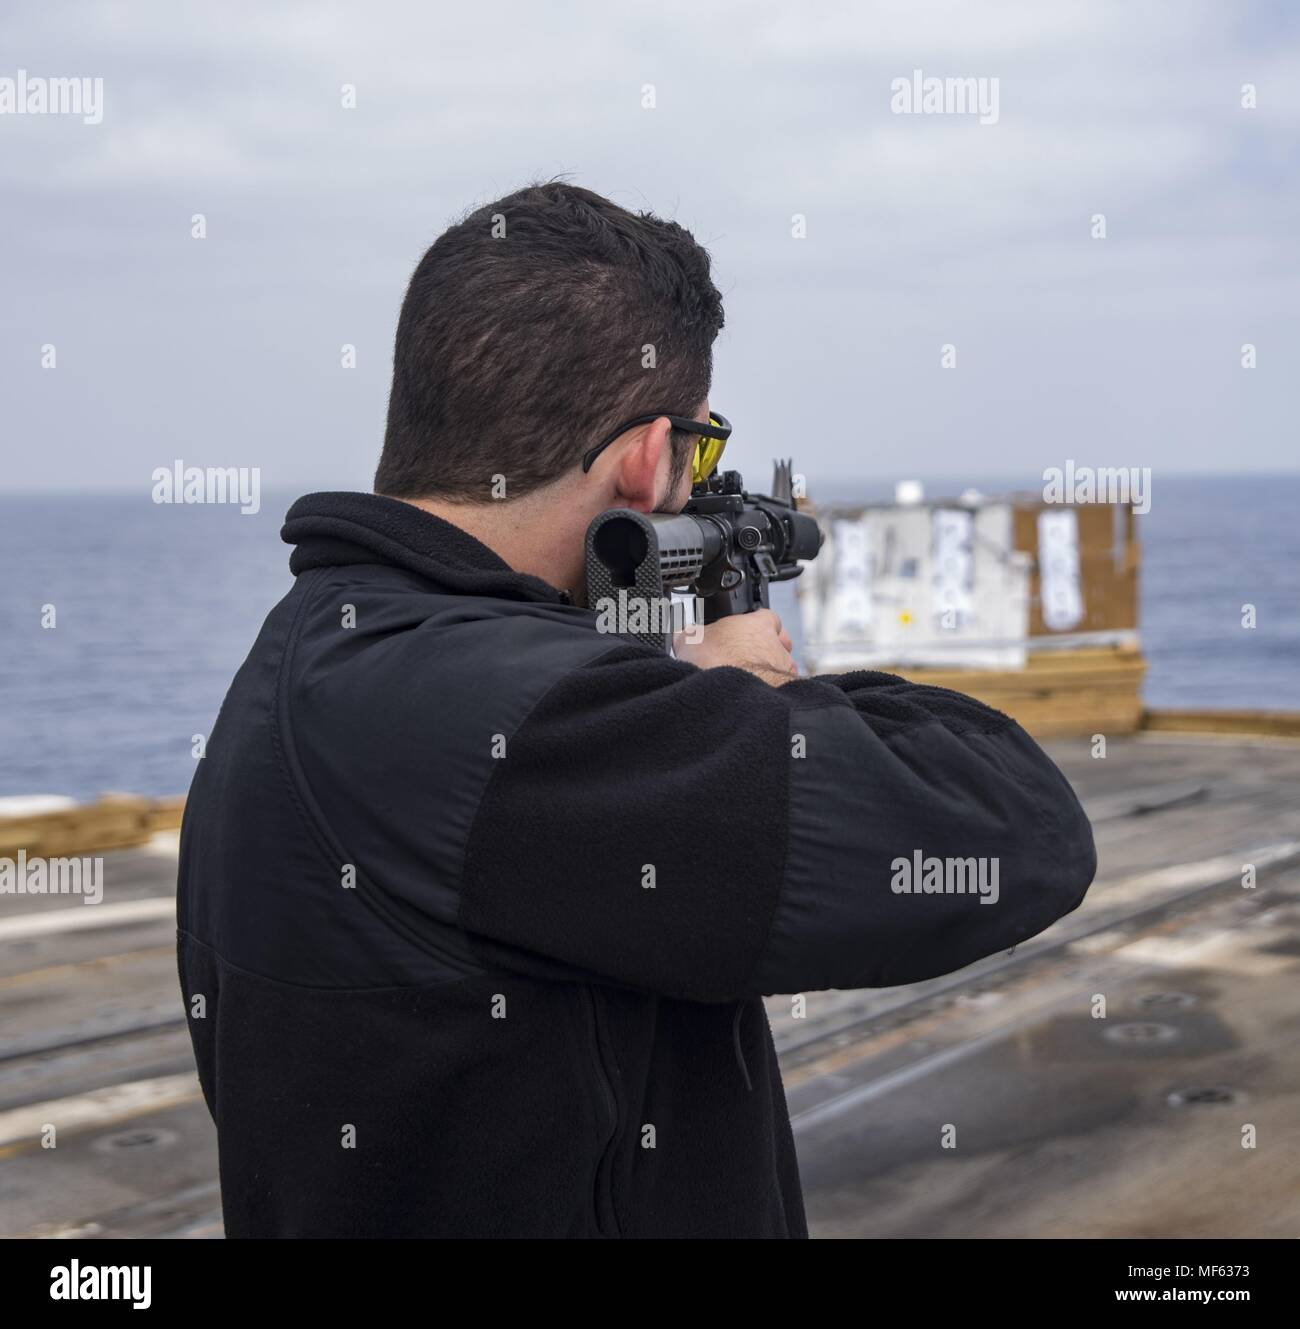 180418-N-DO281-0142 MEDITERRANEAN SEA (April 18, 2018) Quartermaster 3rd Class Colton Benham fires a M-16 rifle during a live-fire exercise aboard the guided-missile cruiser USS Monterey (CG 61), April 18, 2018. Monterey, home-ported in Norfolk, Virginia, is conducting operations in the U.S. 6th Fleet area of operations in support of U.S. national security interest in Europe. (U.S. Navy photo by Mass Communication Specialist Seaman Trey Fowler). () Stock Photo